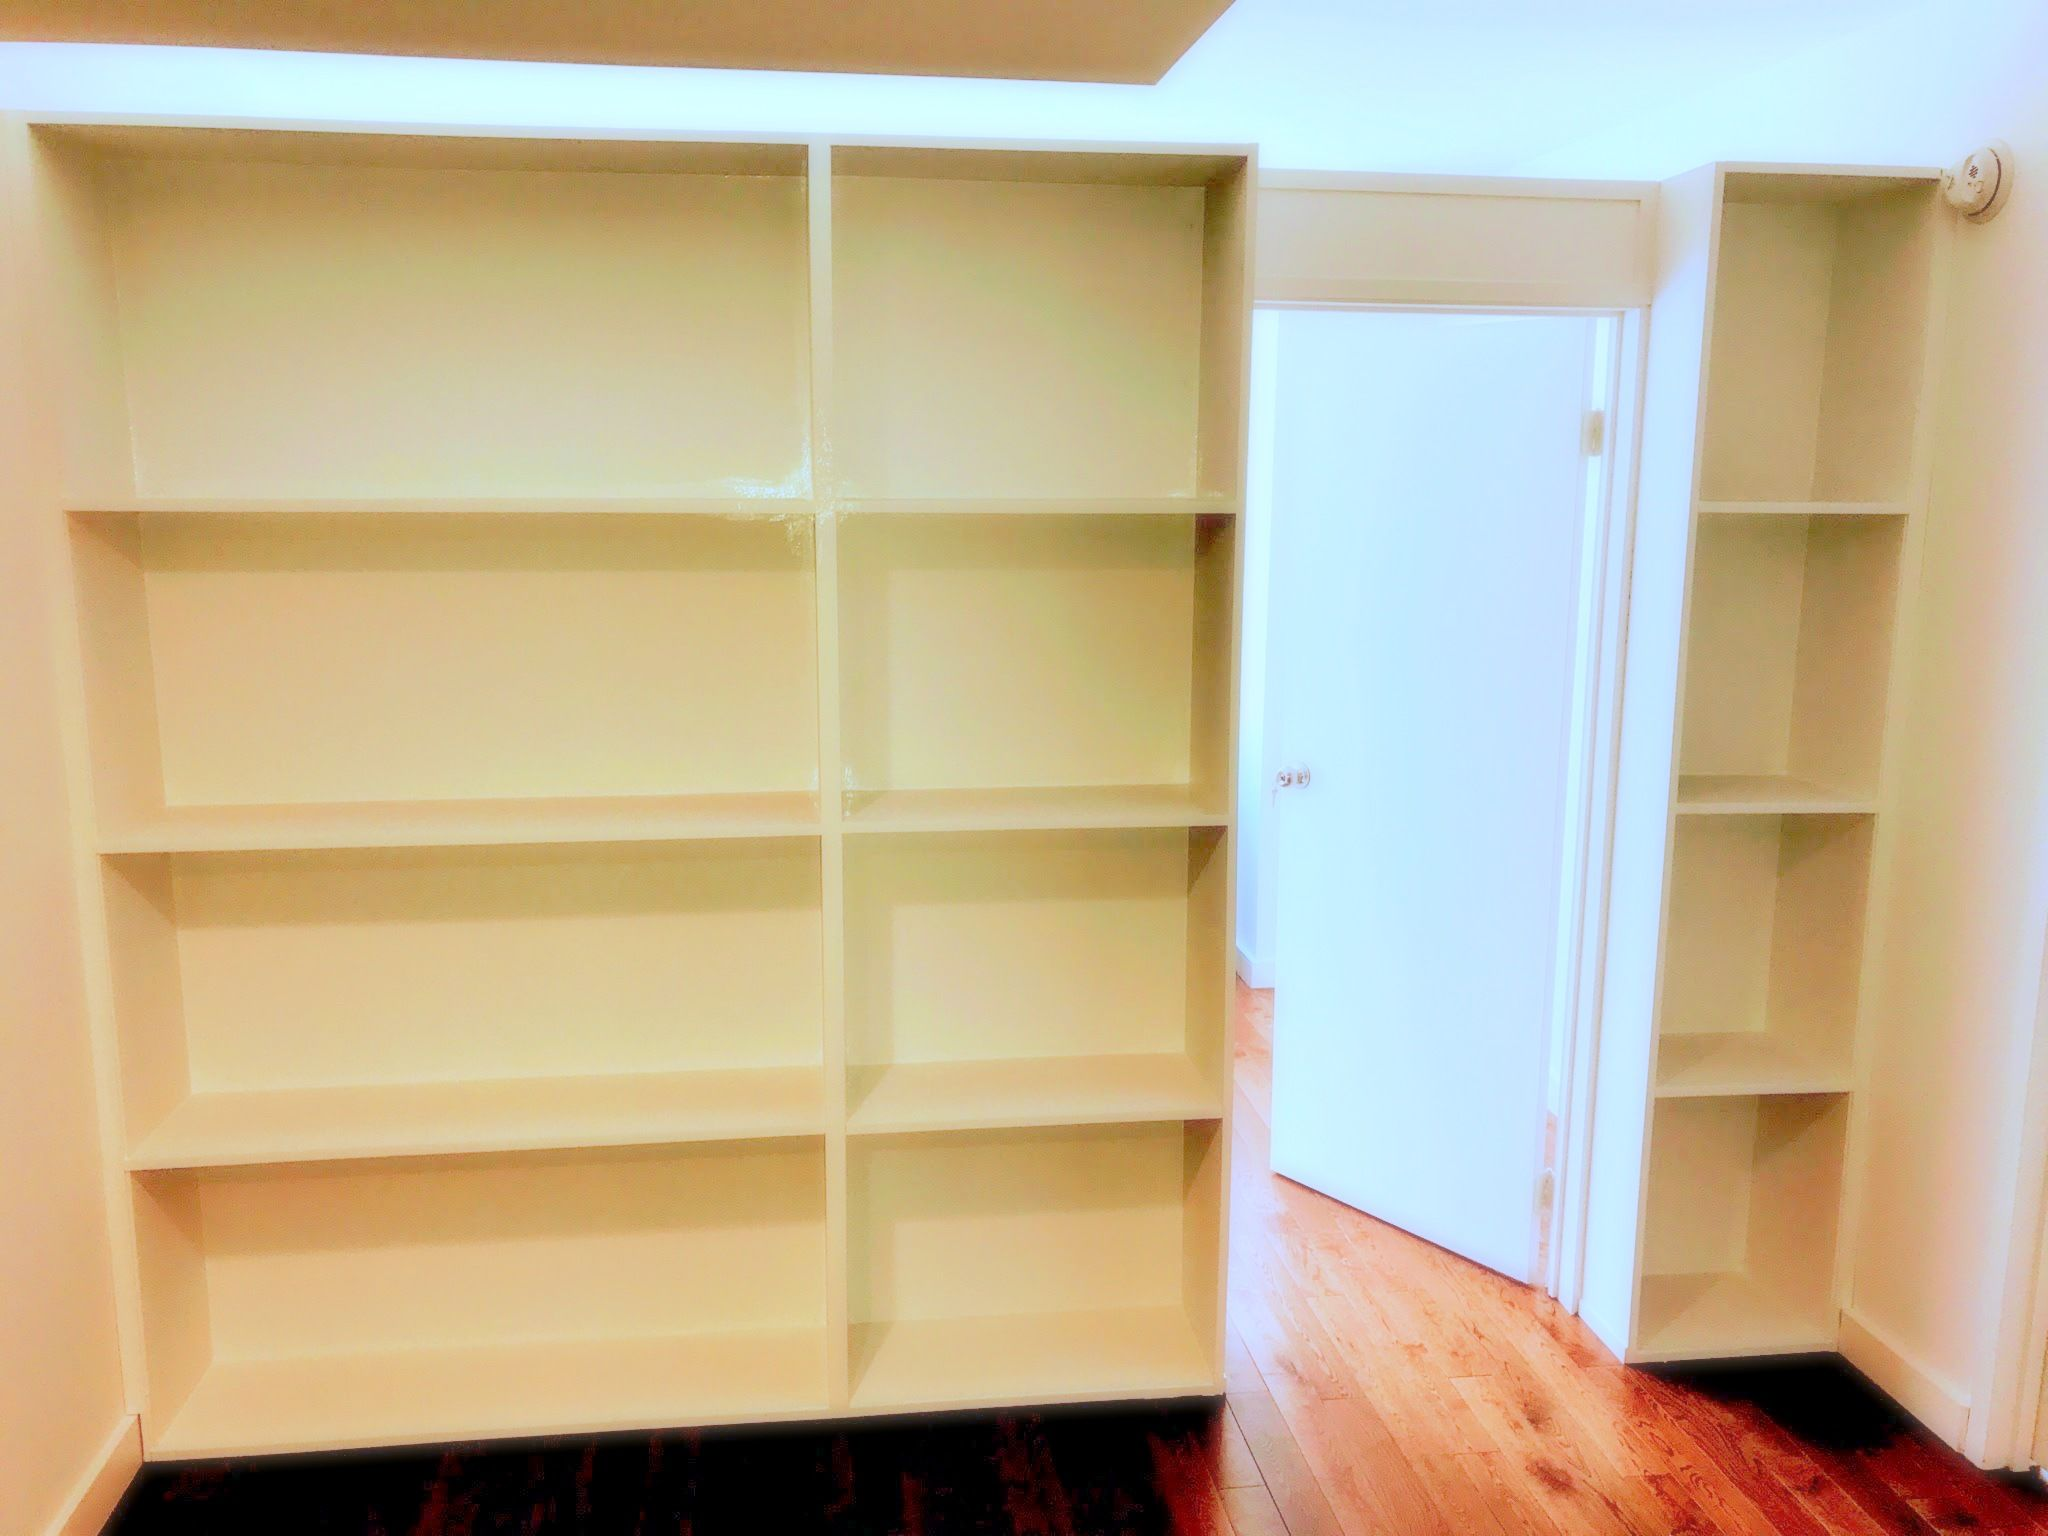 Recent installation: Custom apartment storage partition. Call us for ...